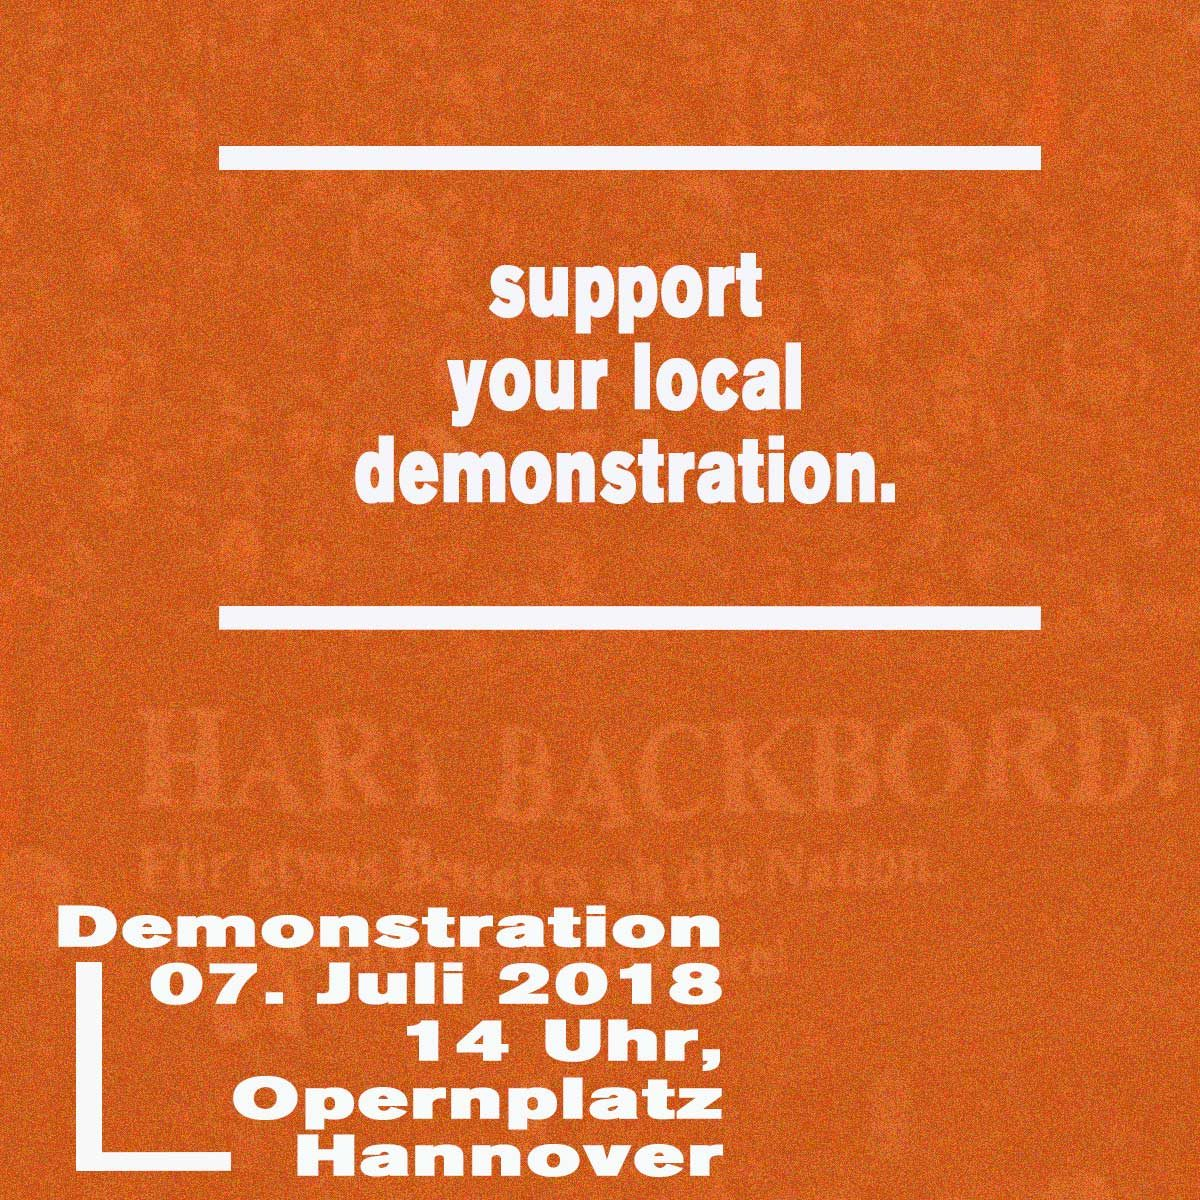 support your local demonstration!